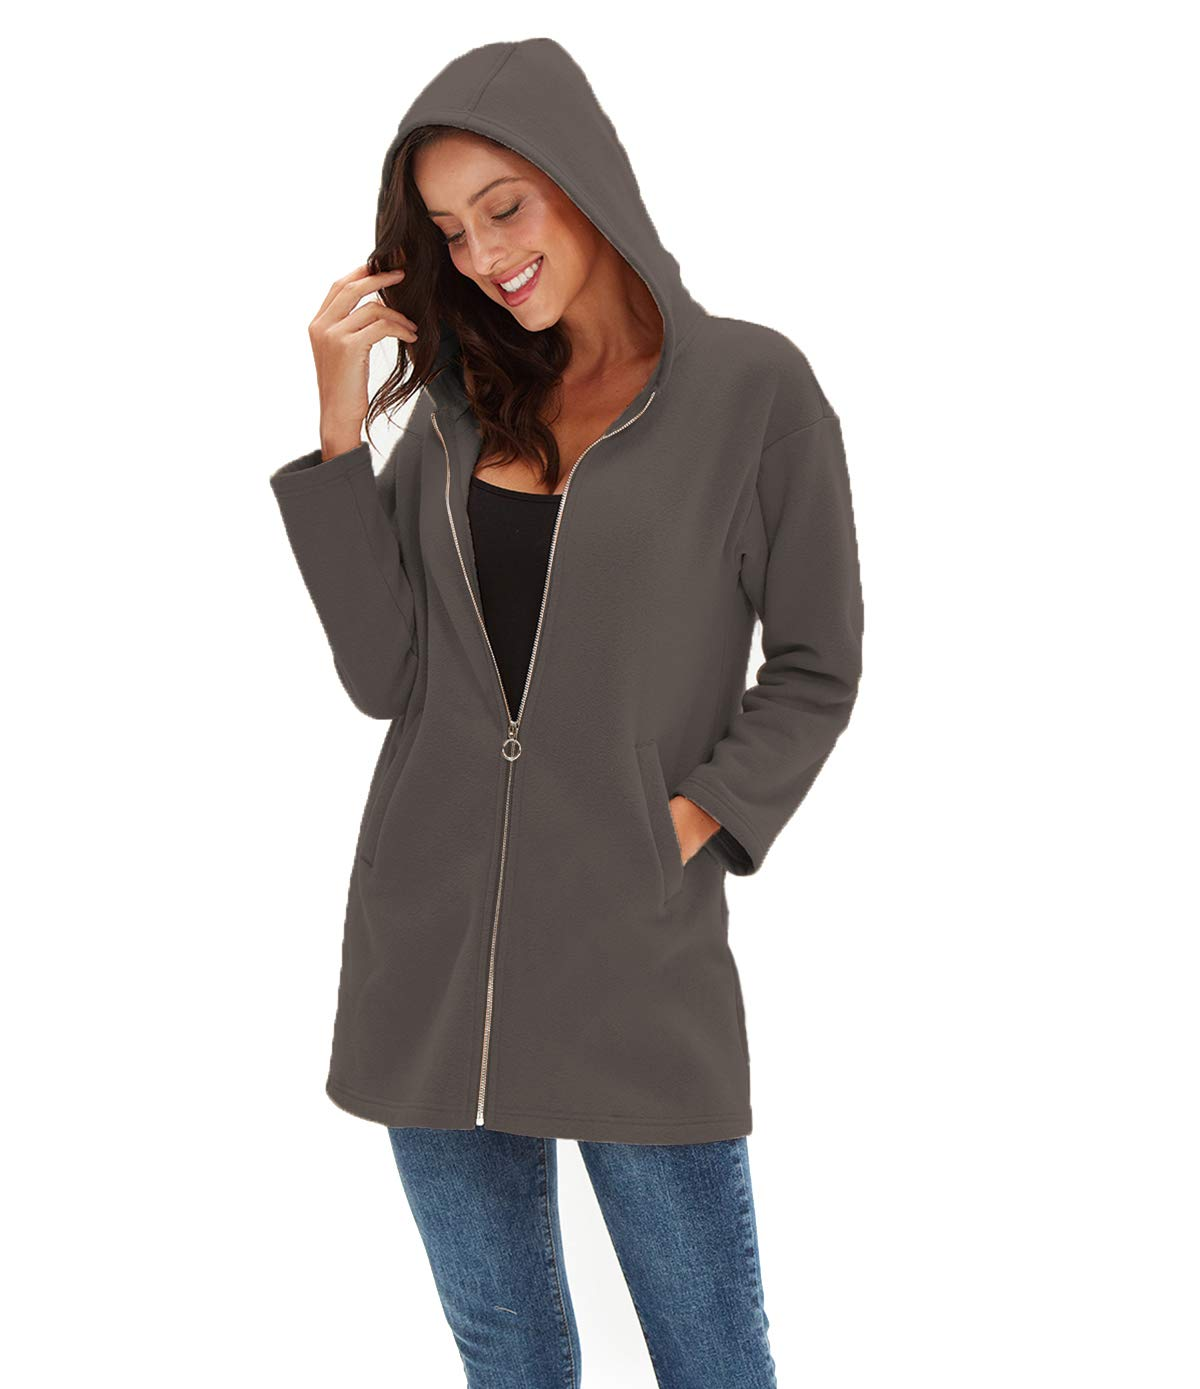 Amazhiyu Womens Zip up Hoodie Jacket Pocket Basic Long Sleeve Hoodie Tunic Casual Sweatshirts Coat